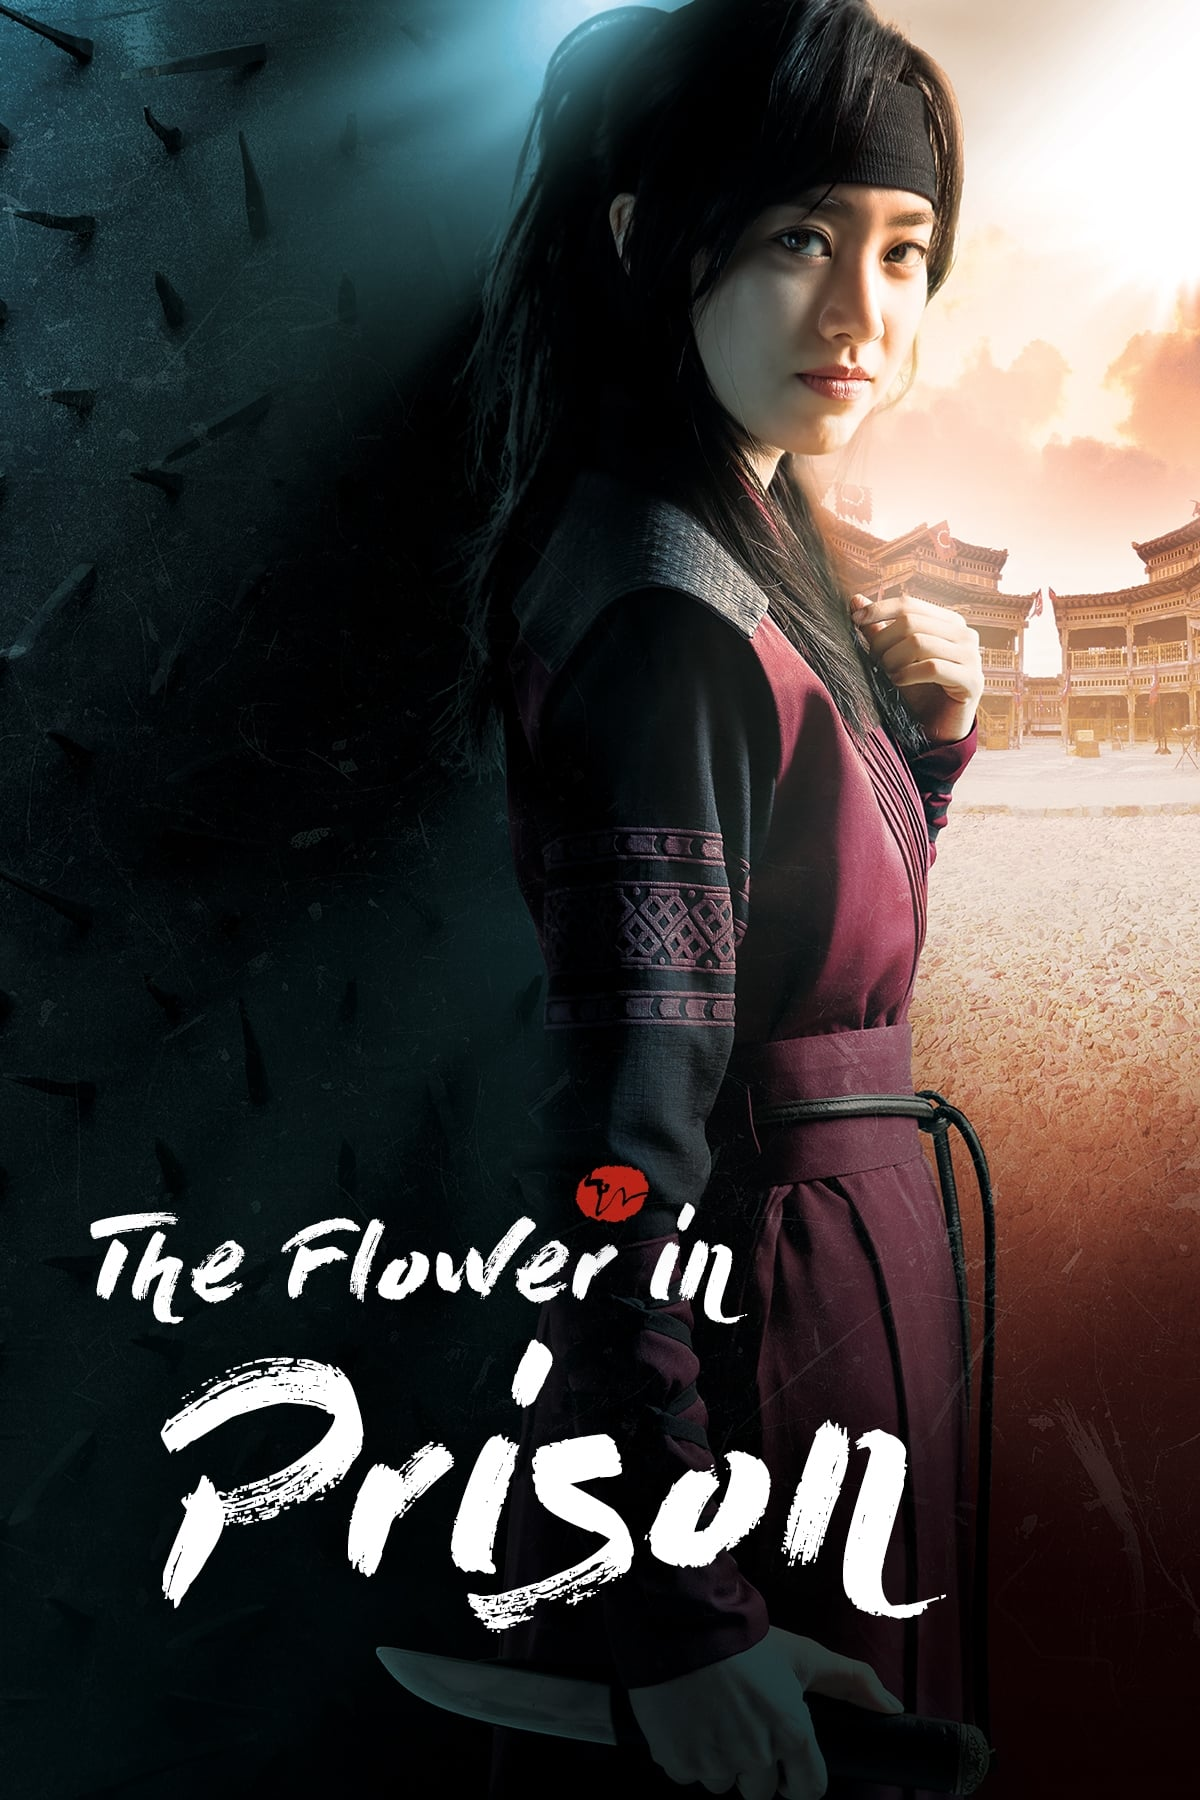 The Flower in Prison Poster